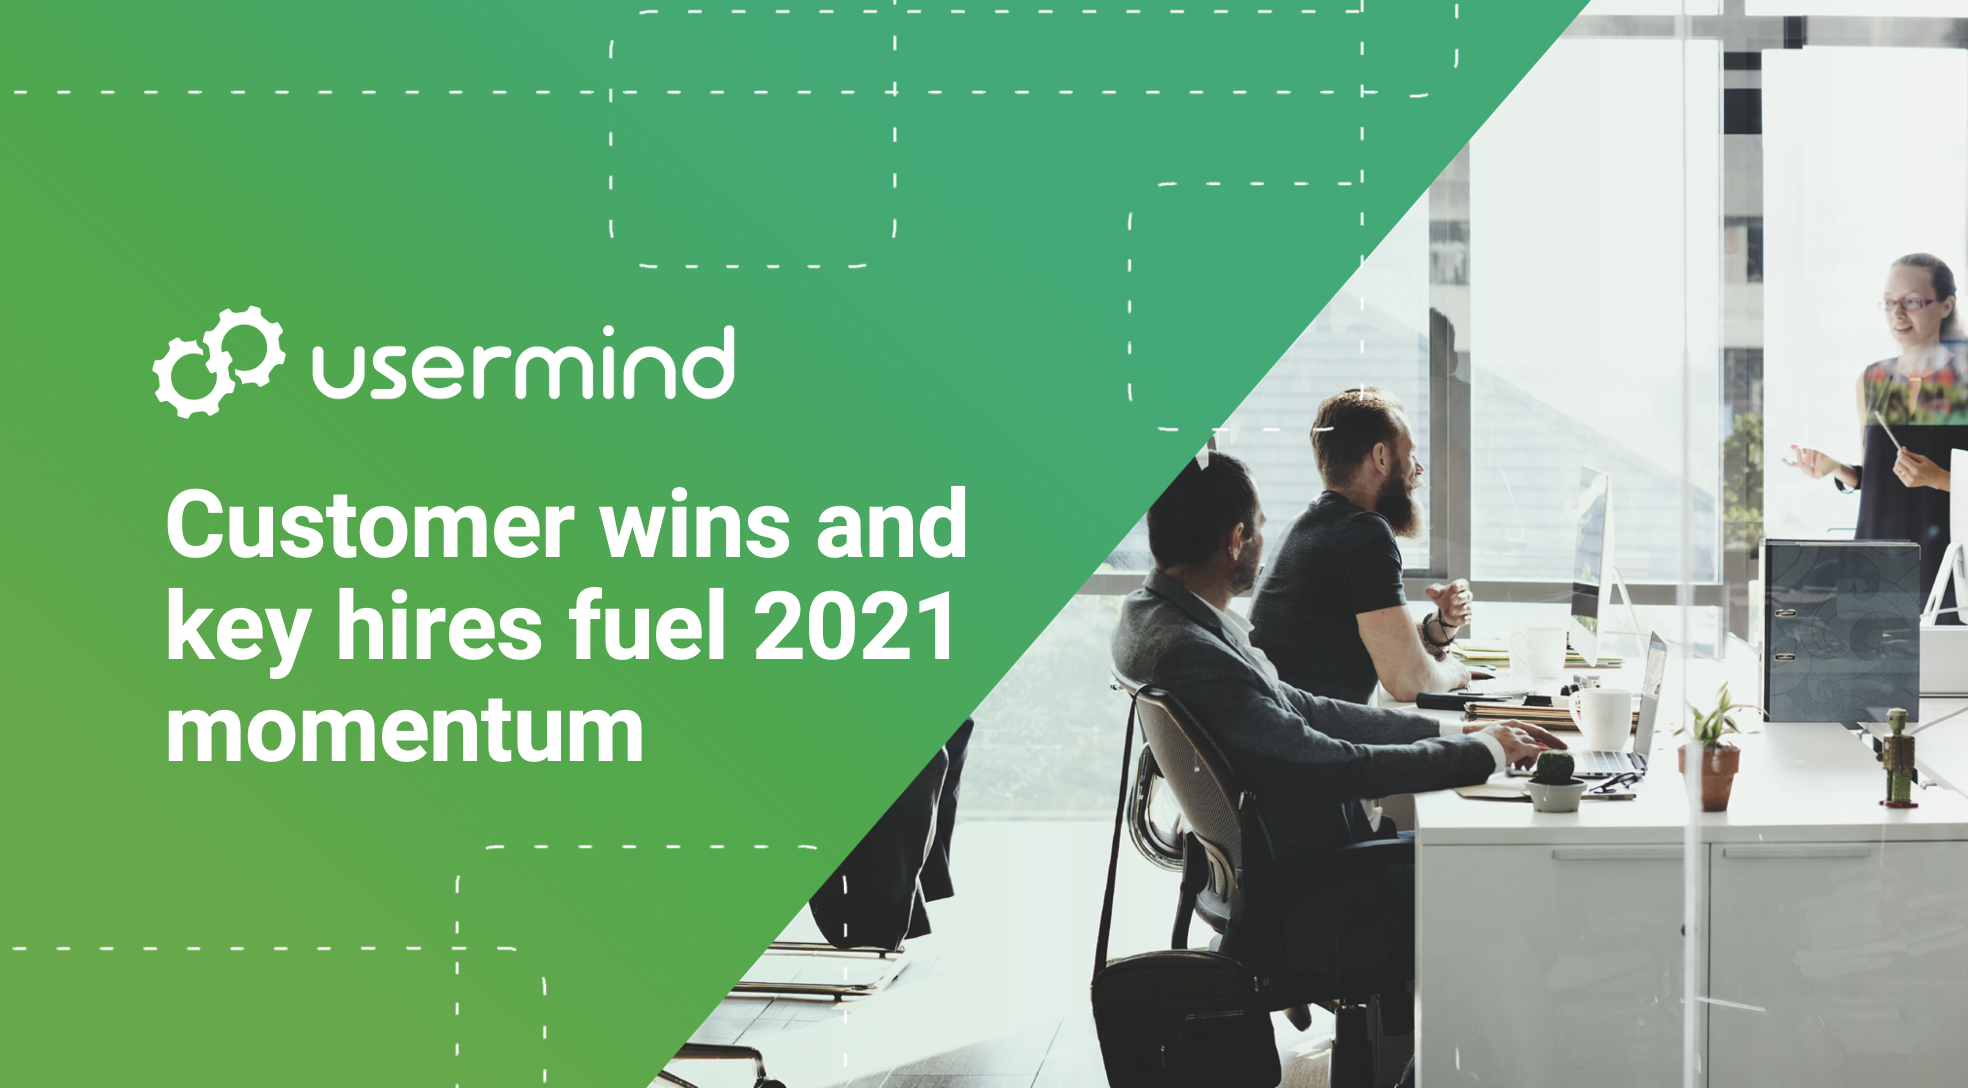 Usermind raises over $14m led by WestRiver Group in 2020